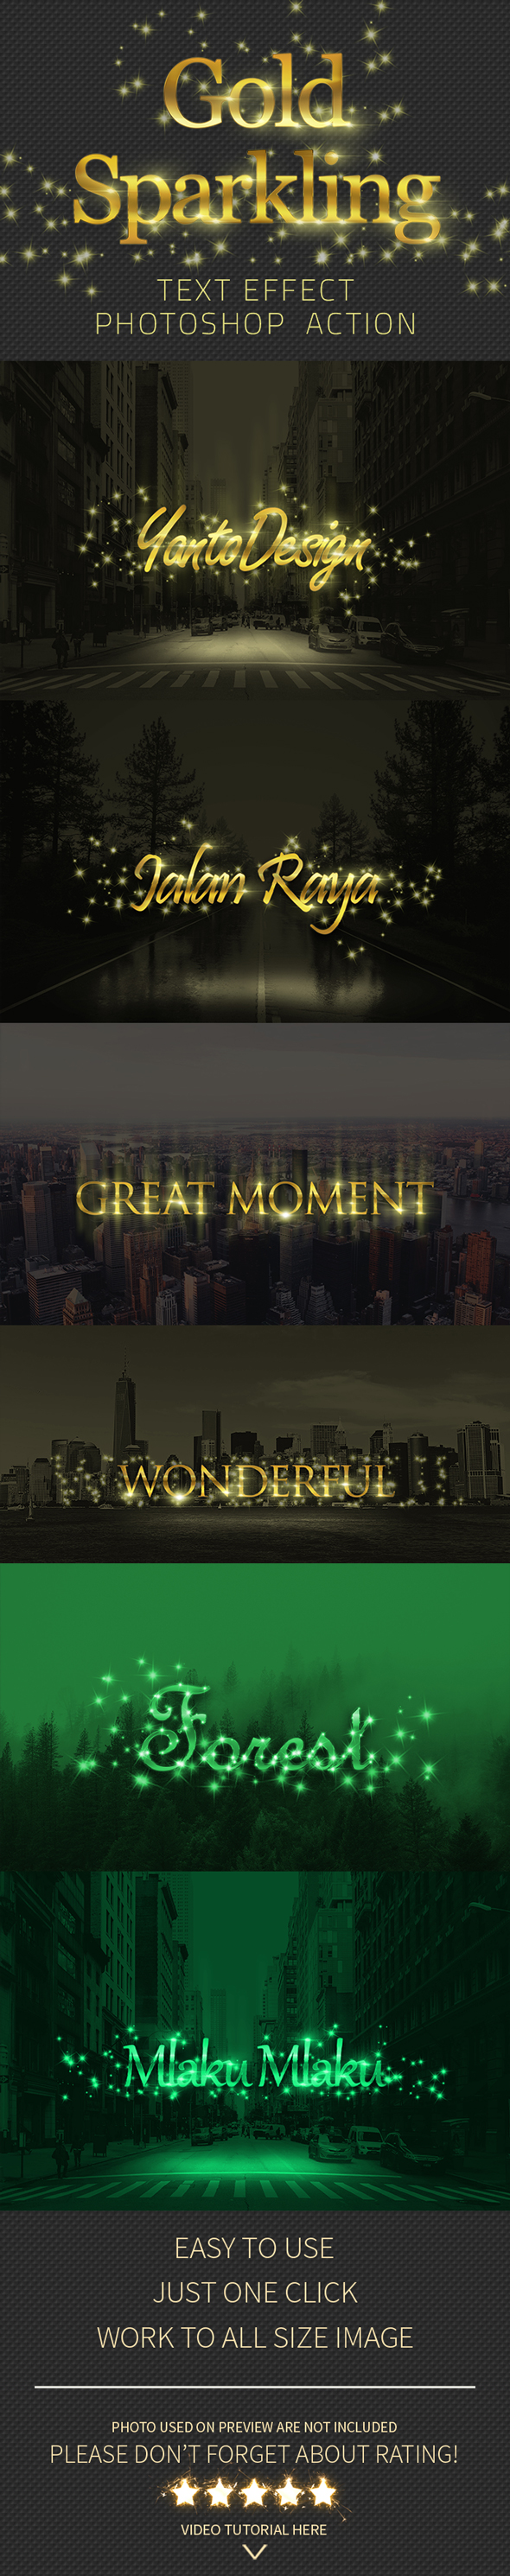 Text effect action graphics designs templates baditri Image collections